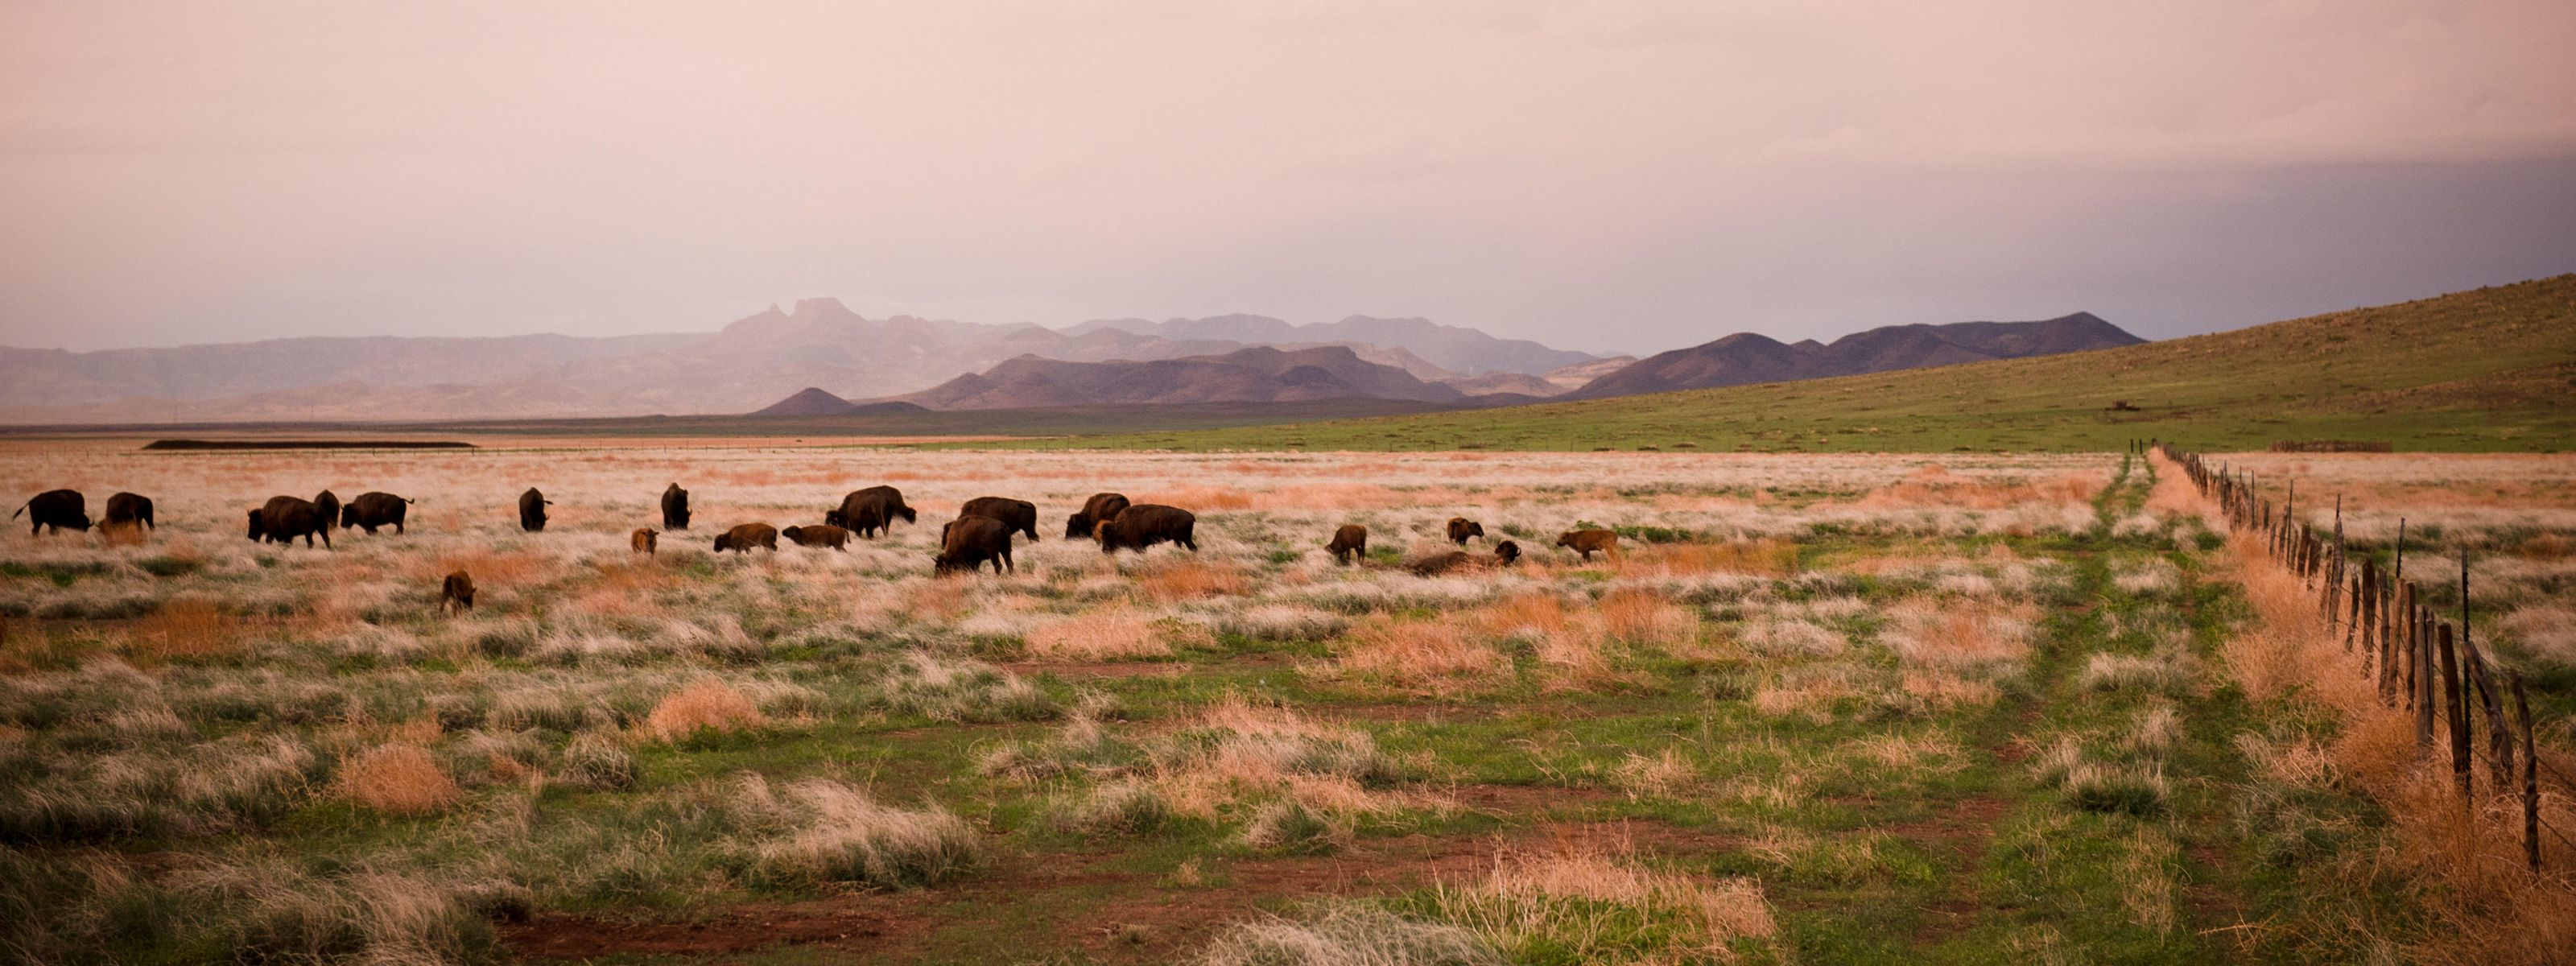 23 bison were reintroduced at El Uno Ecological Reserve in November of 2009, a donation of the Wind Cave National Park, South Dakota.